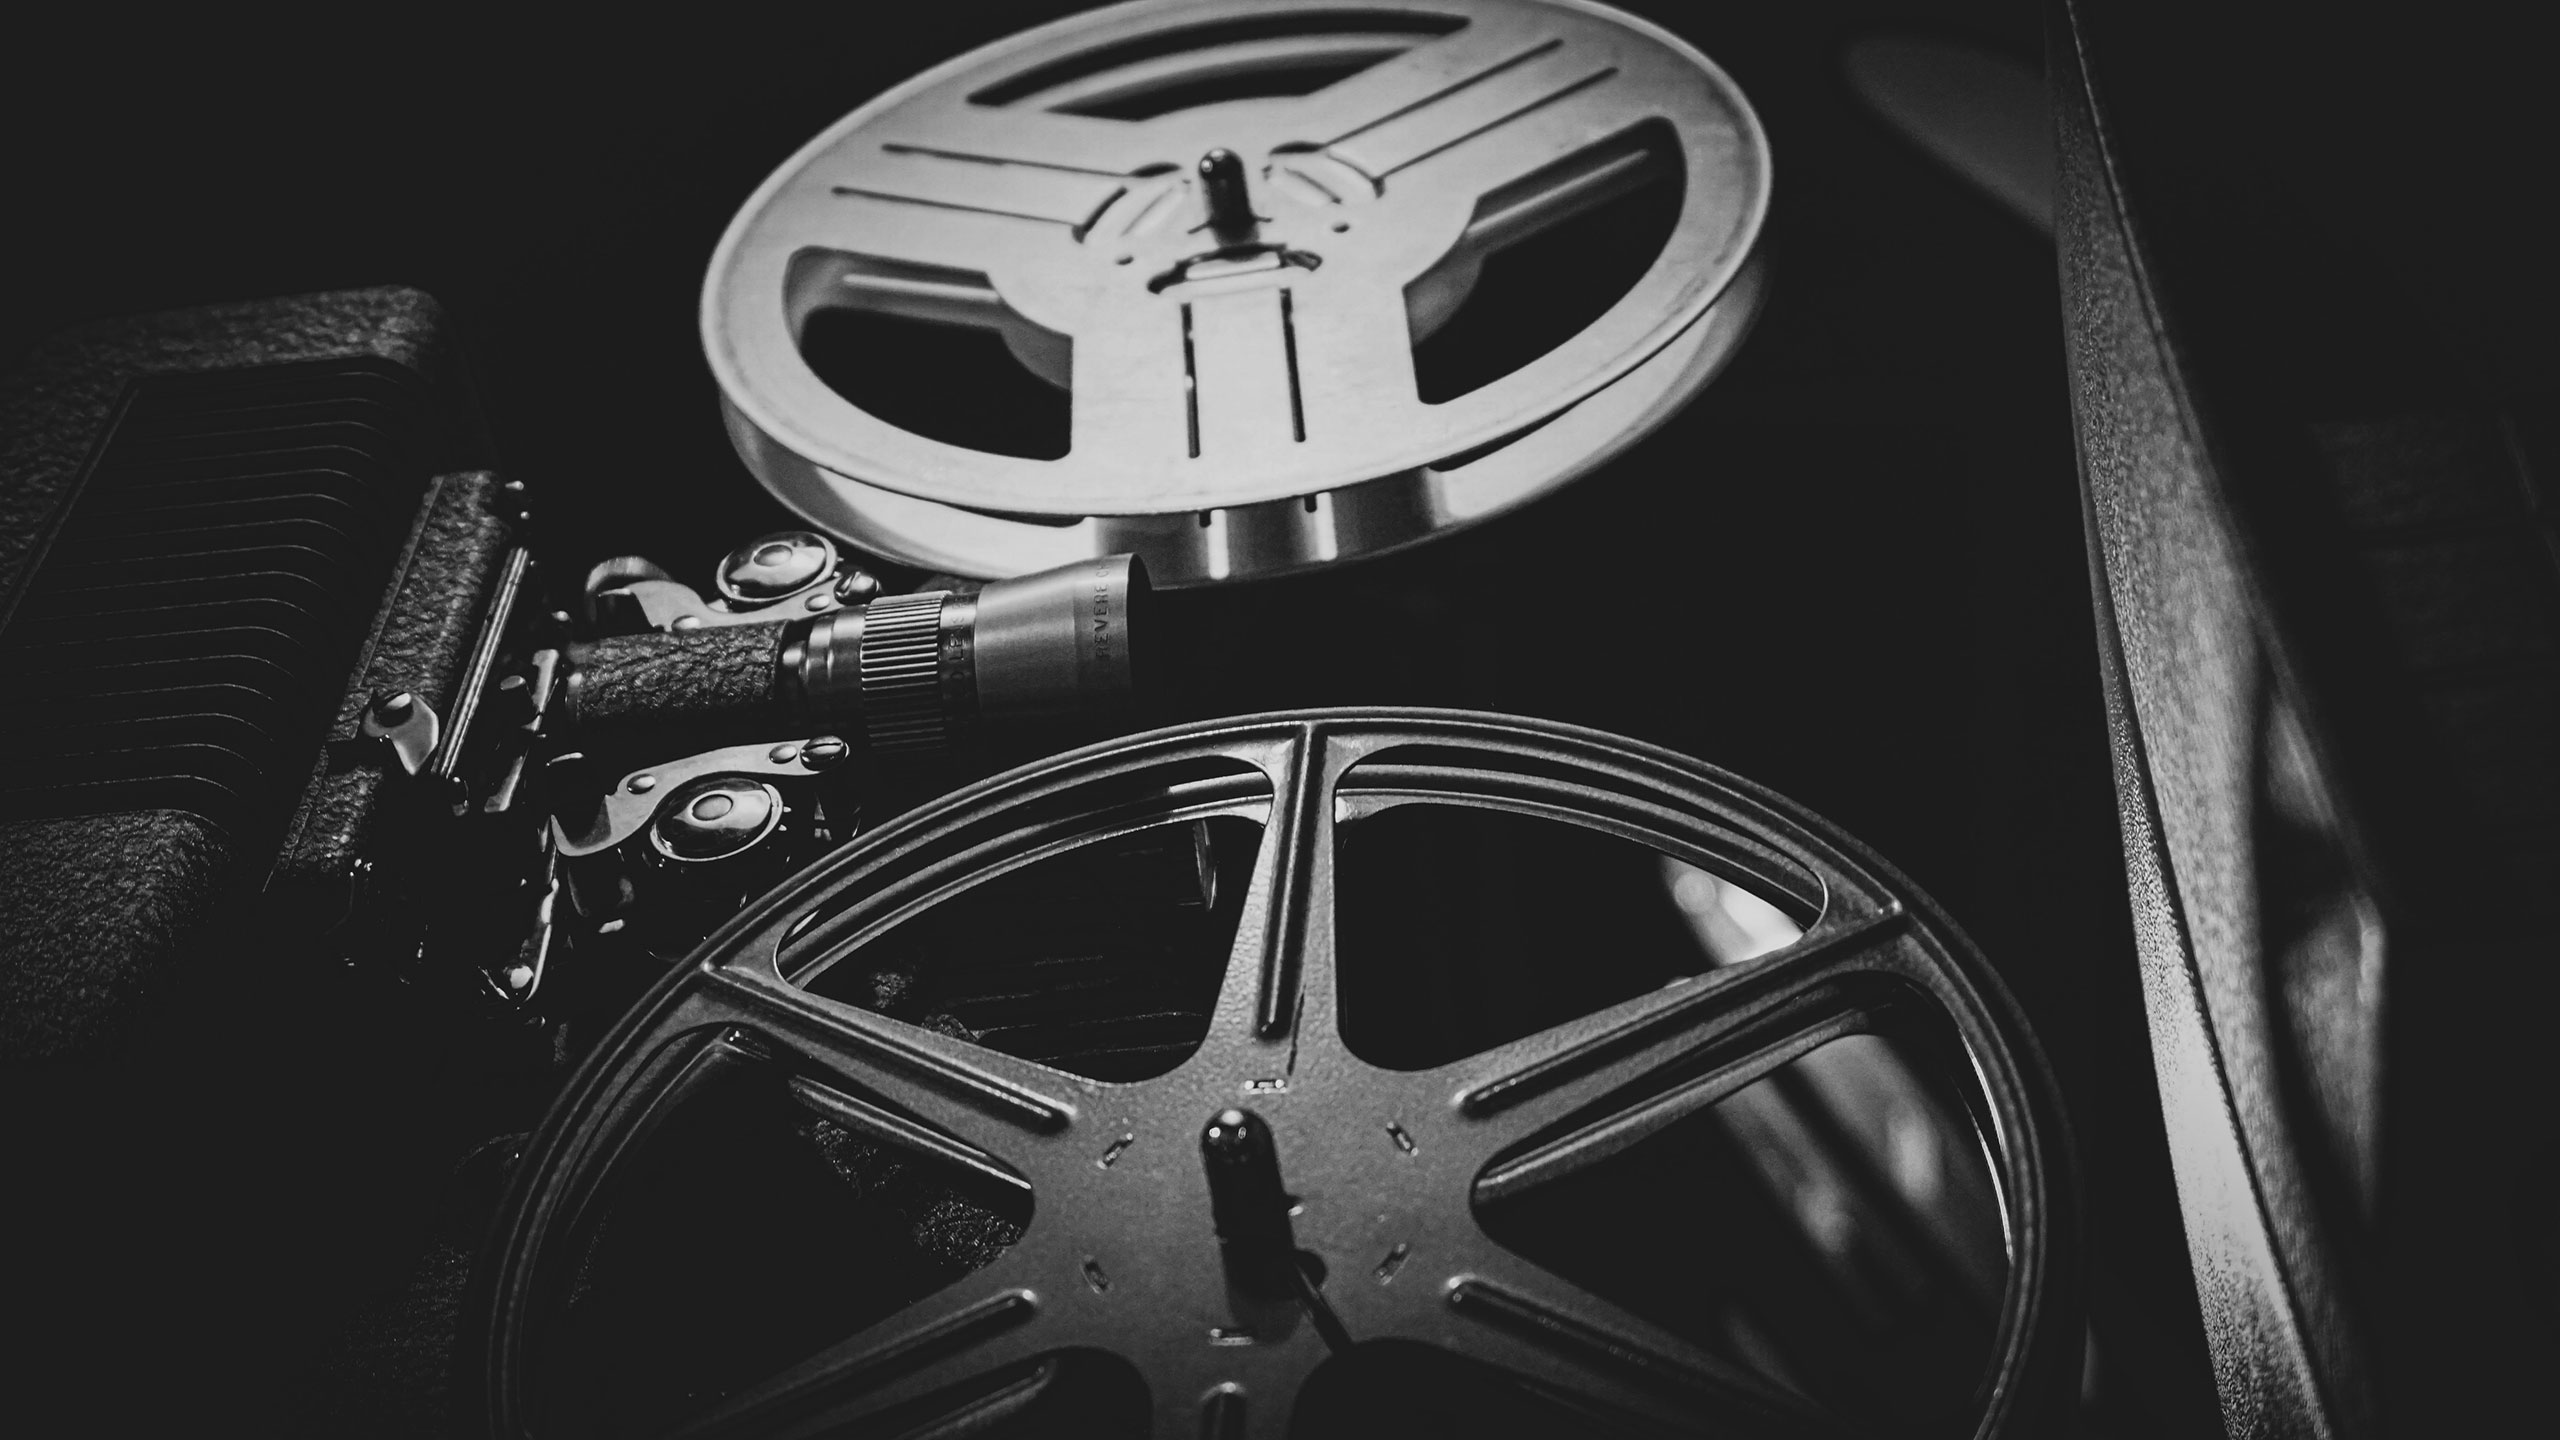 More great photography movies to check out this weekend